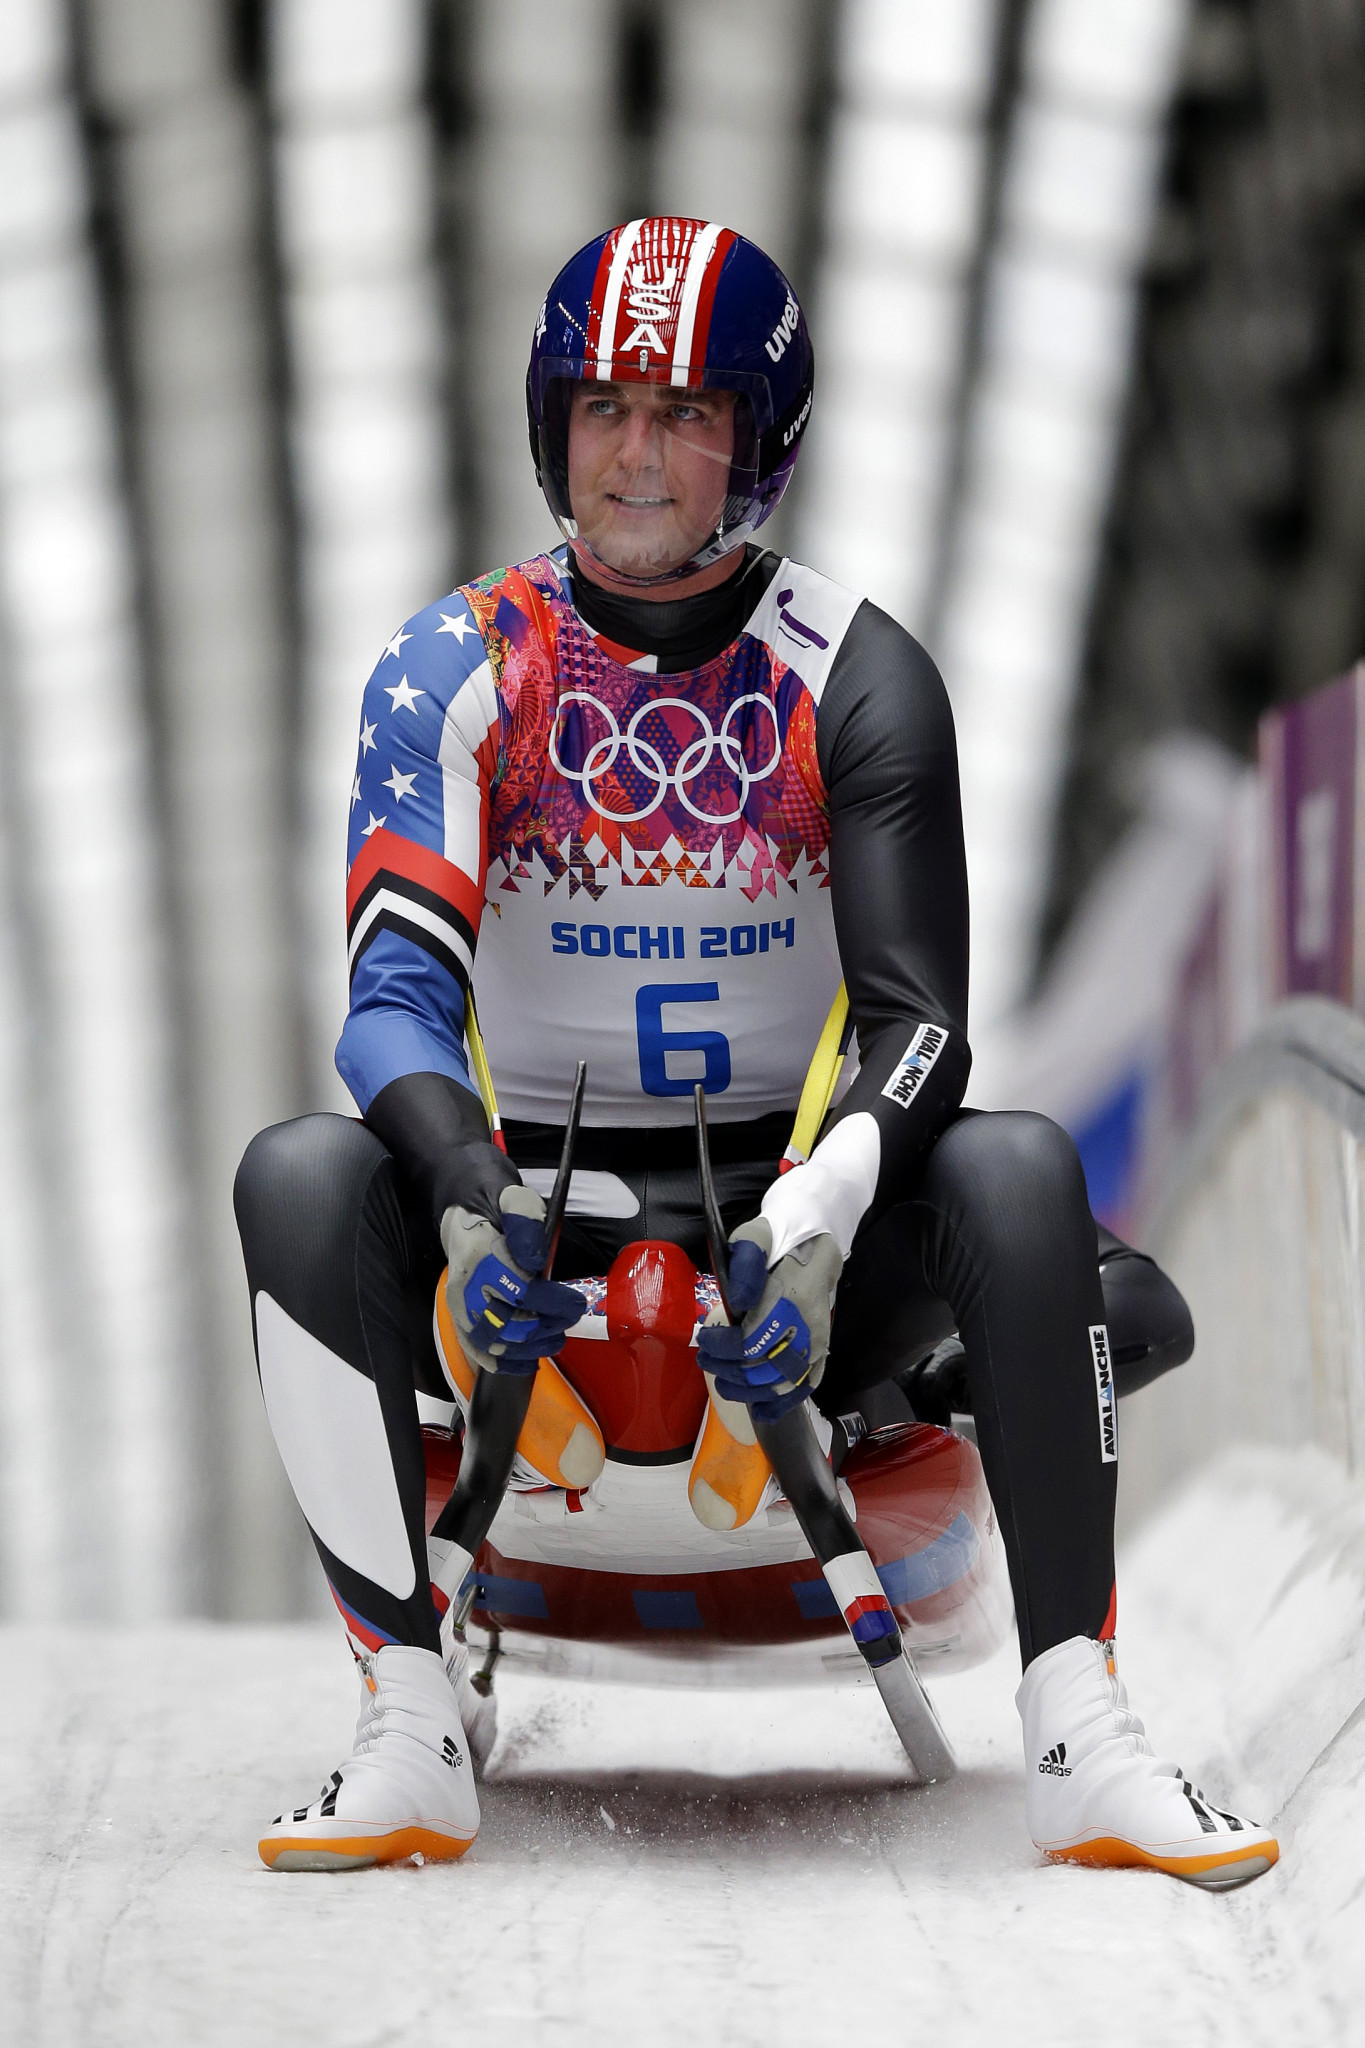 Three-time Olympian Christian Niccum was discovered through the